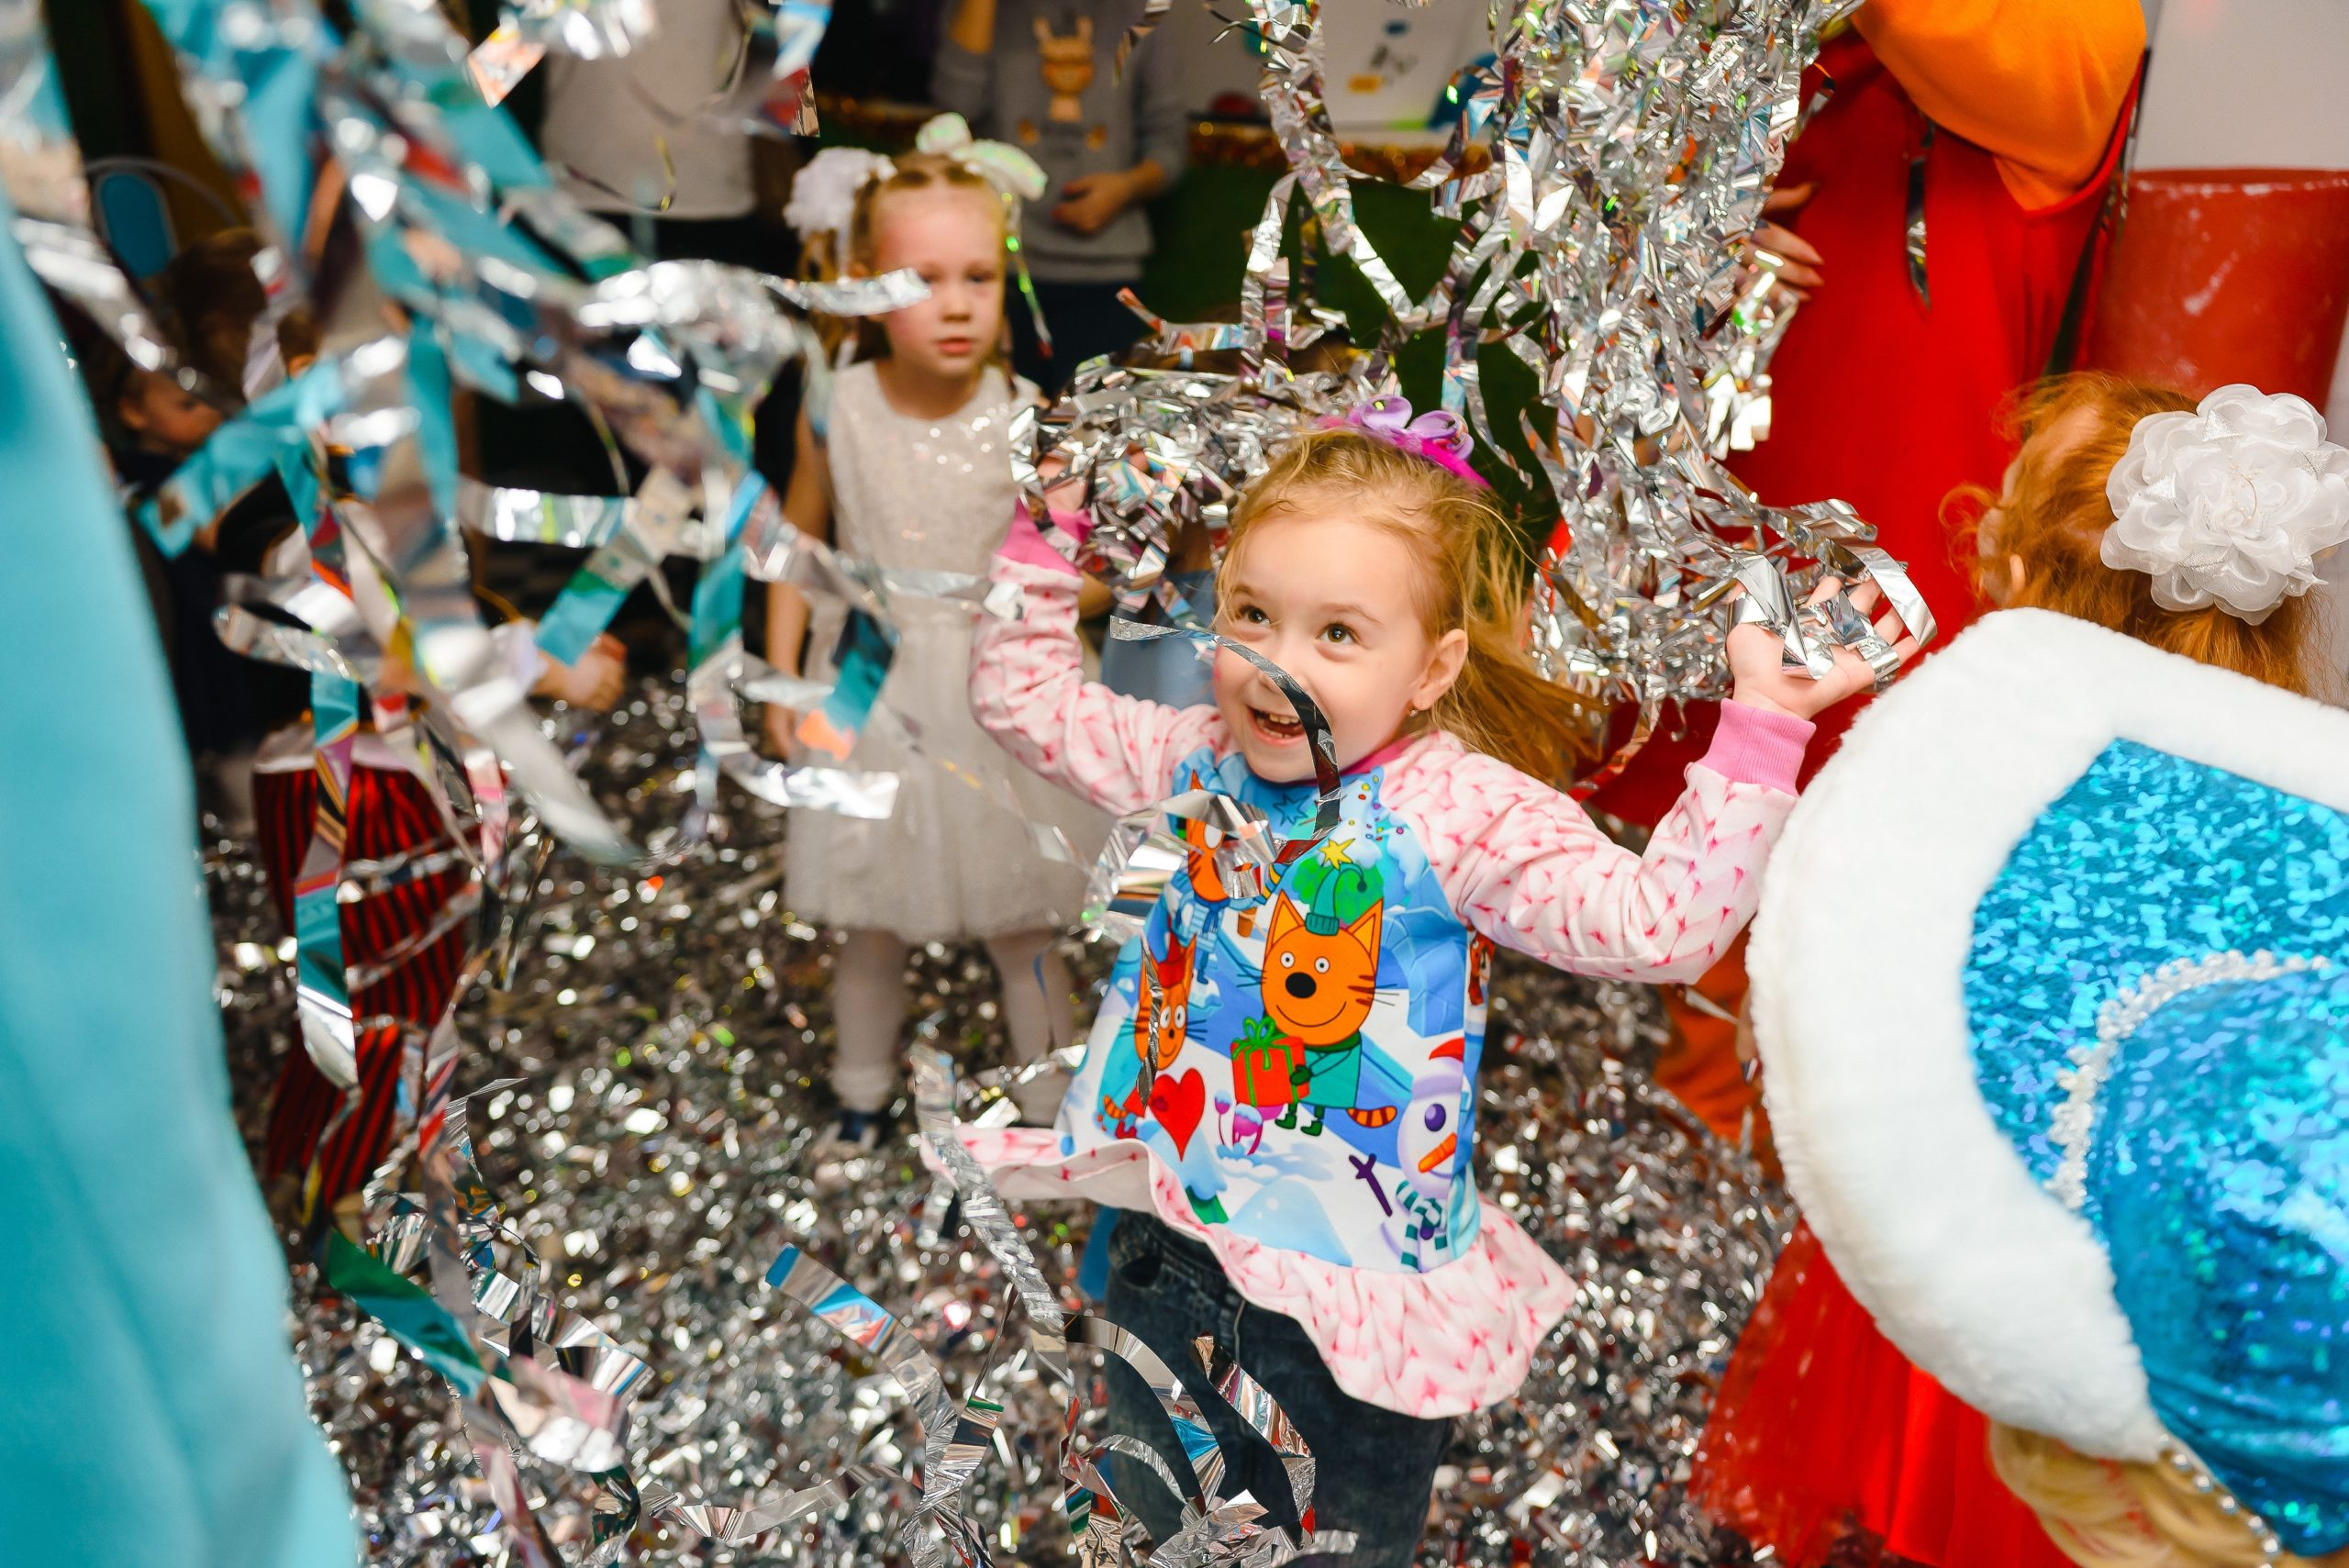 Kids Dance Party Ideas to Throw a Rocking Party for Your Little One